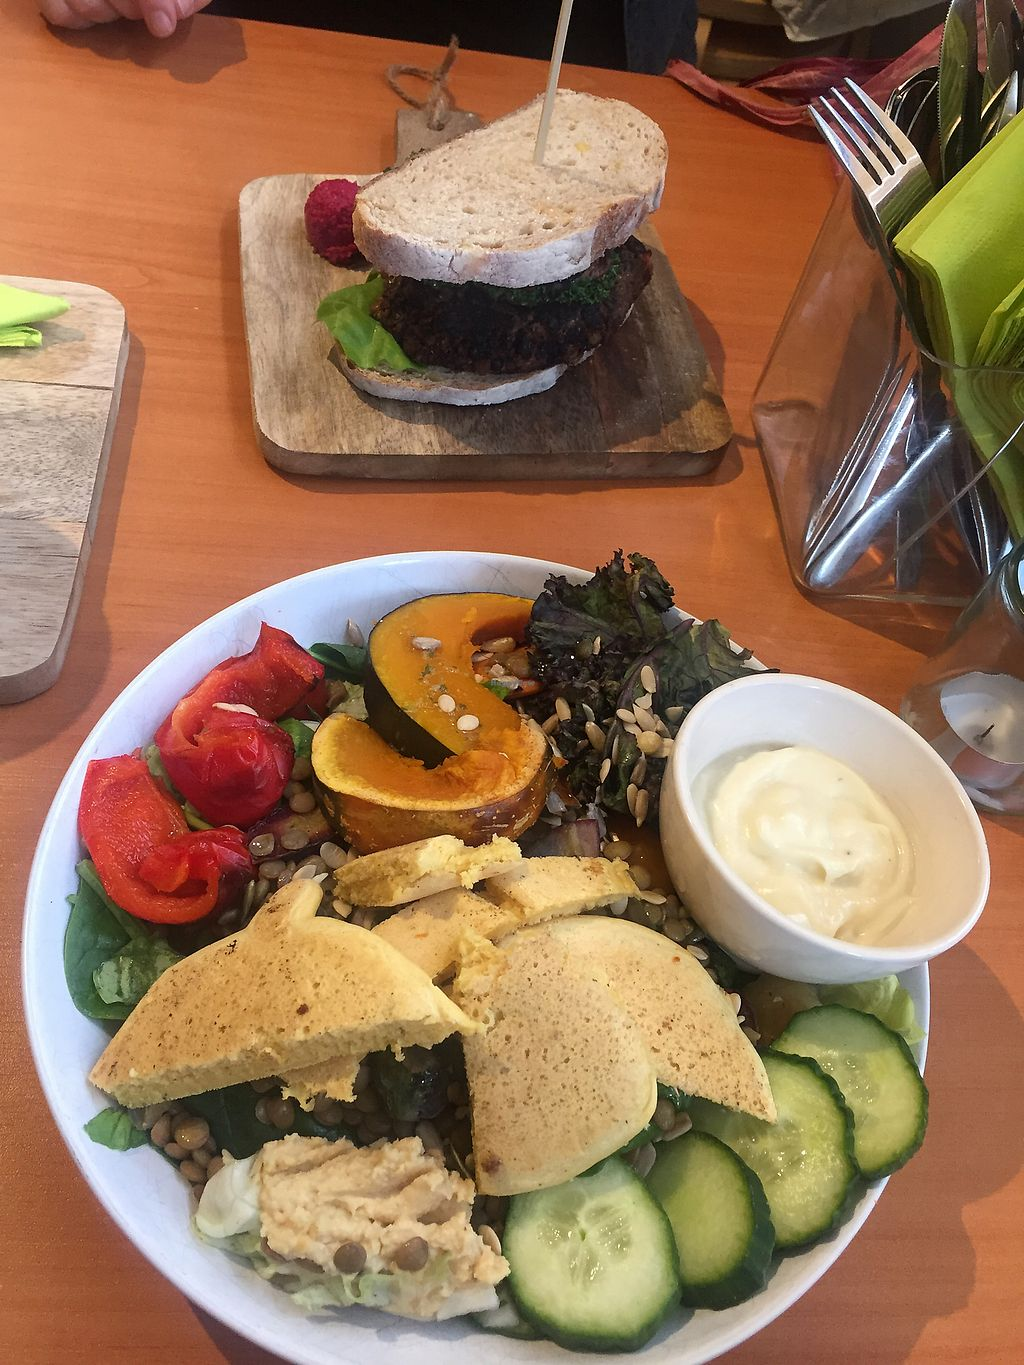 """Photo of Bindi Cafe  by <a href=""""/members/profile/vegalika"""">vegalika</a> <br/>Burger and salad, very delicious? <br/> November 3, 2017  - <a href='/contact/abuse/image/55809/321398'>Report</a>"""